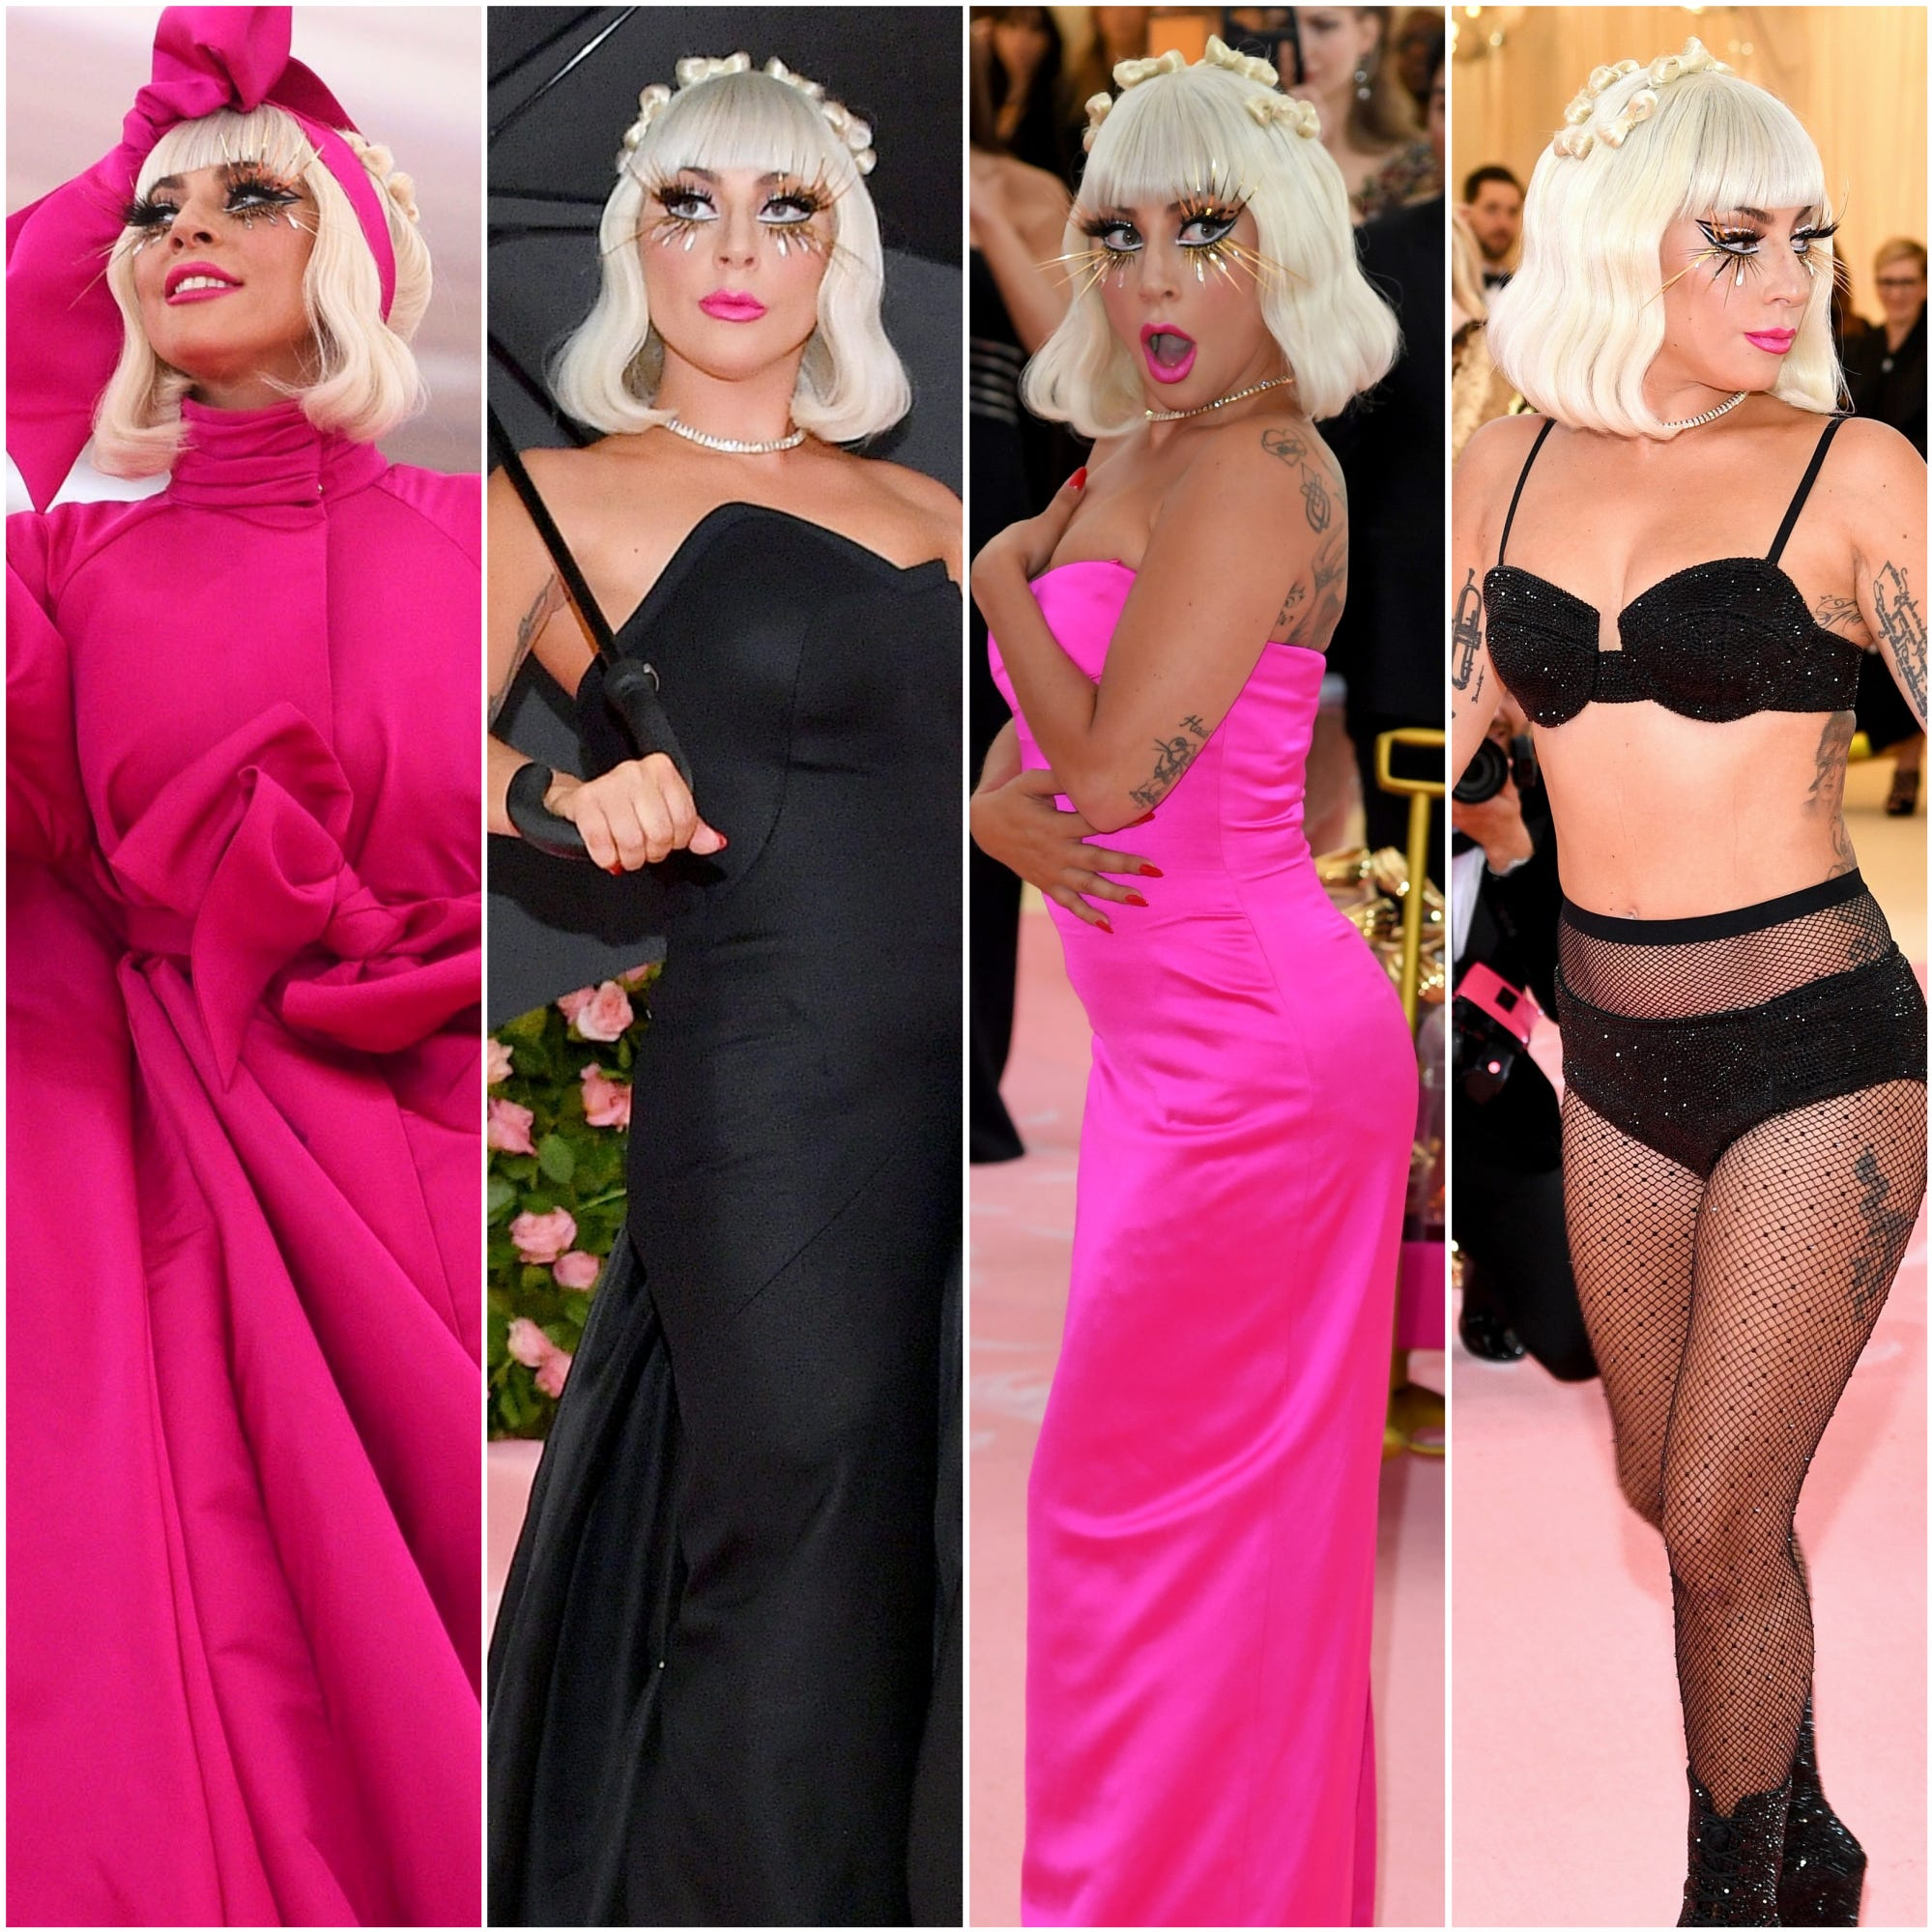 One carpet; four looks. Lady Gaga had a memorable metamorphosis on the Met Gala carpet.